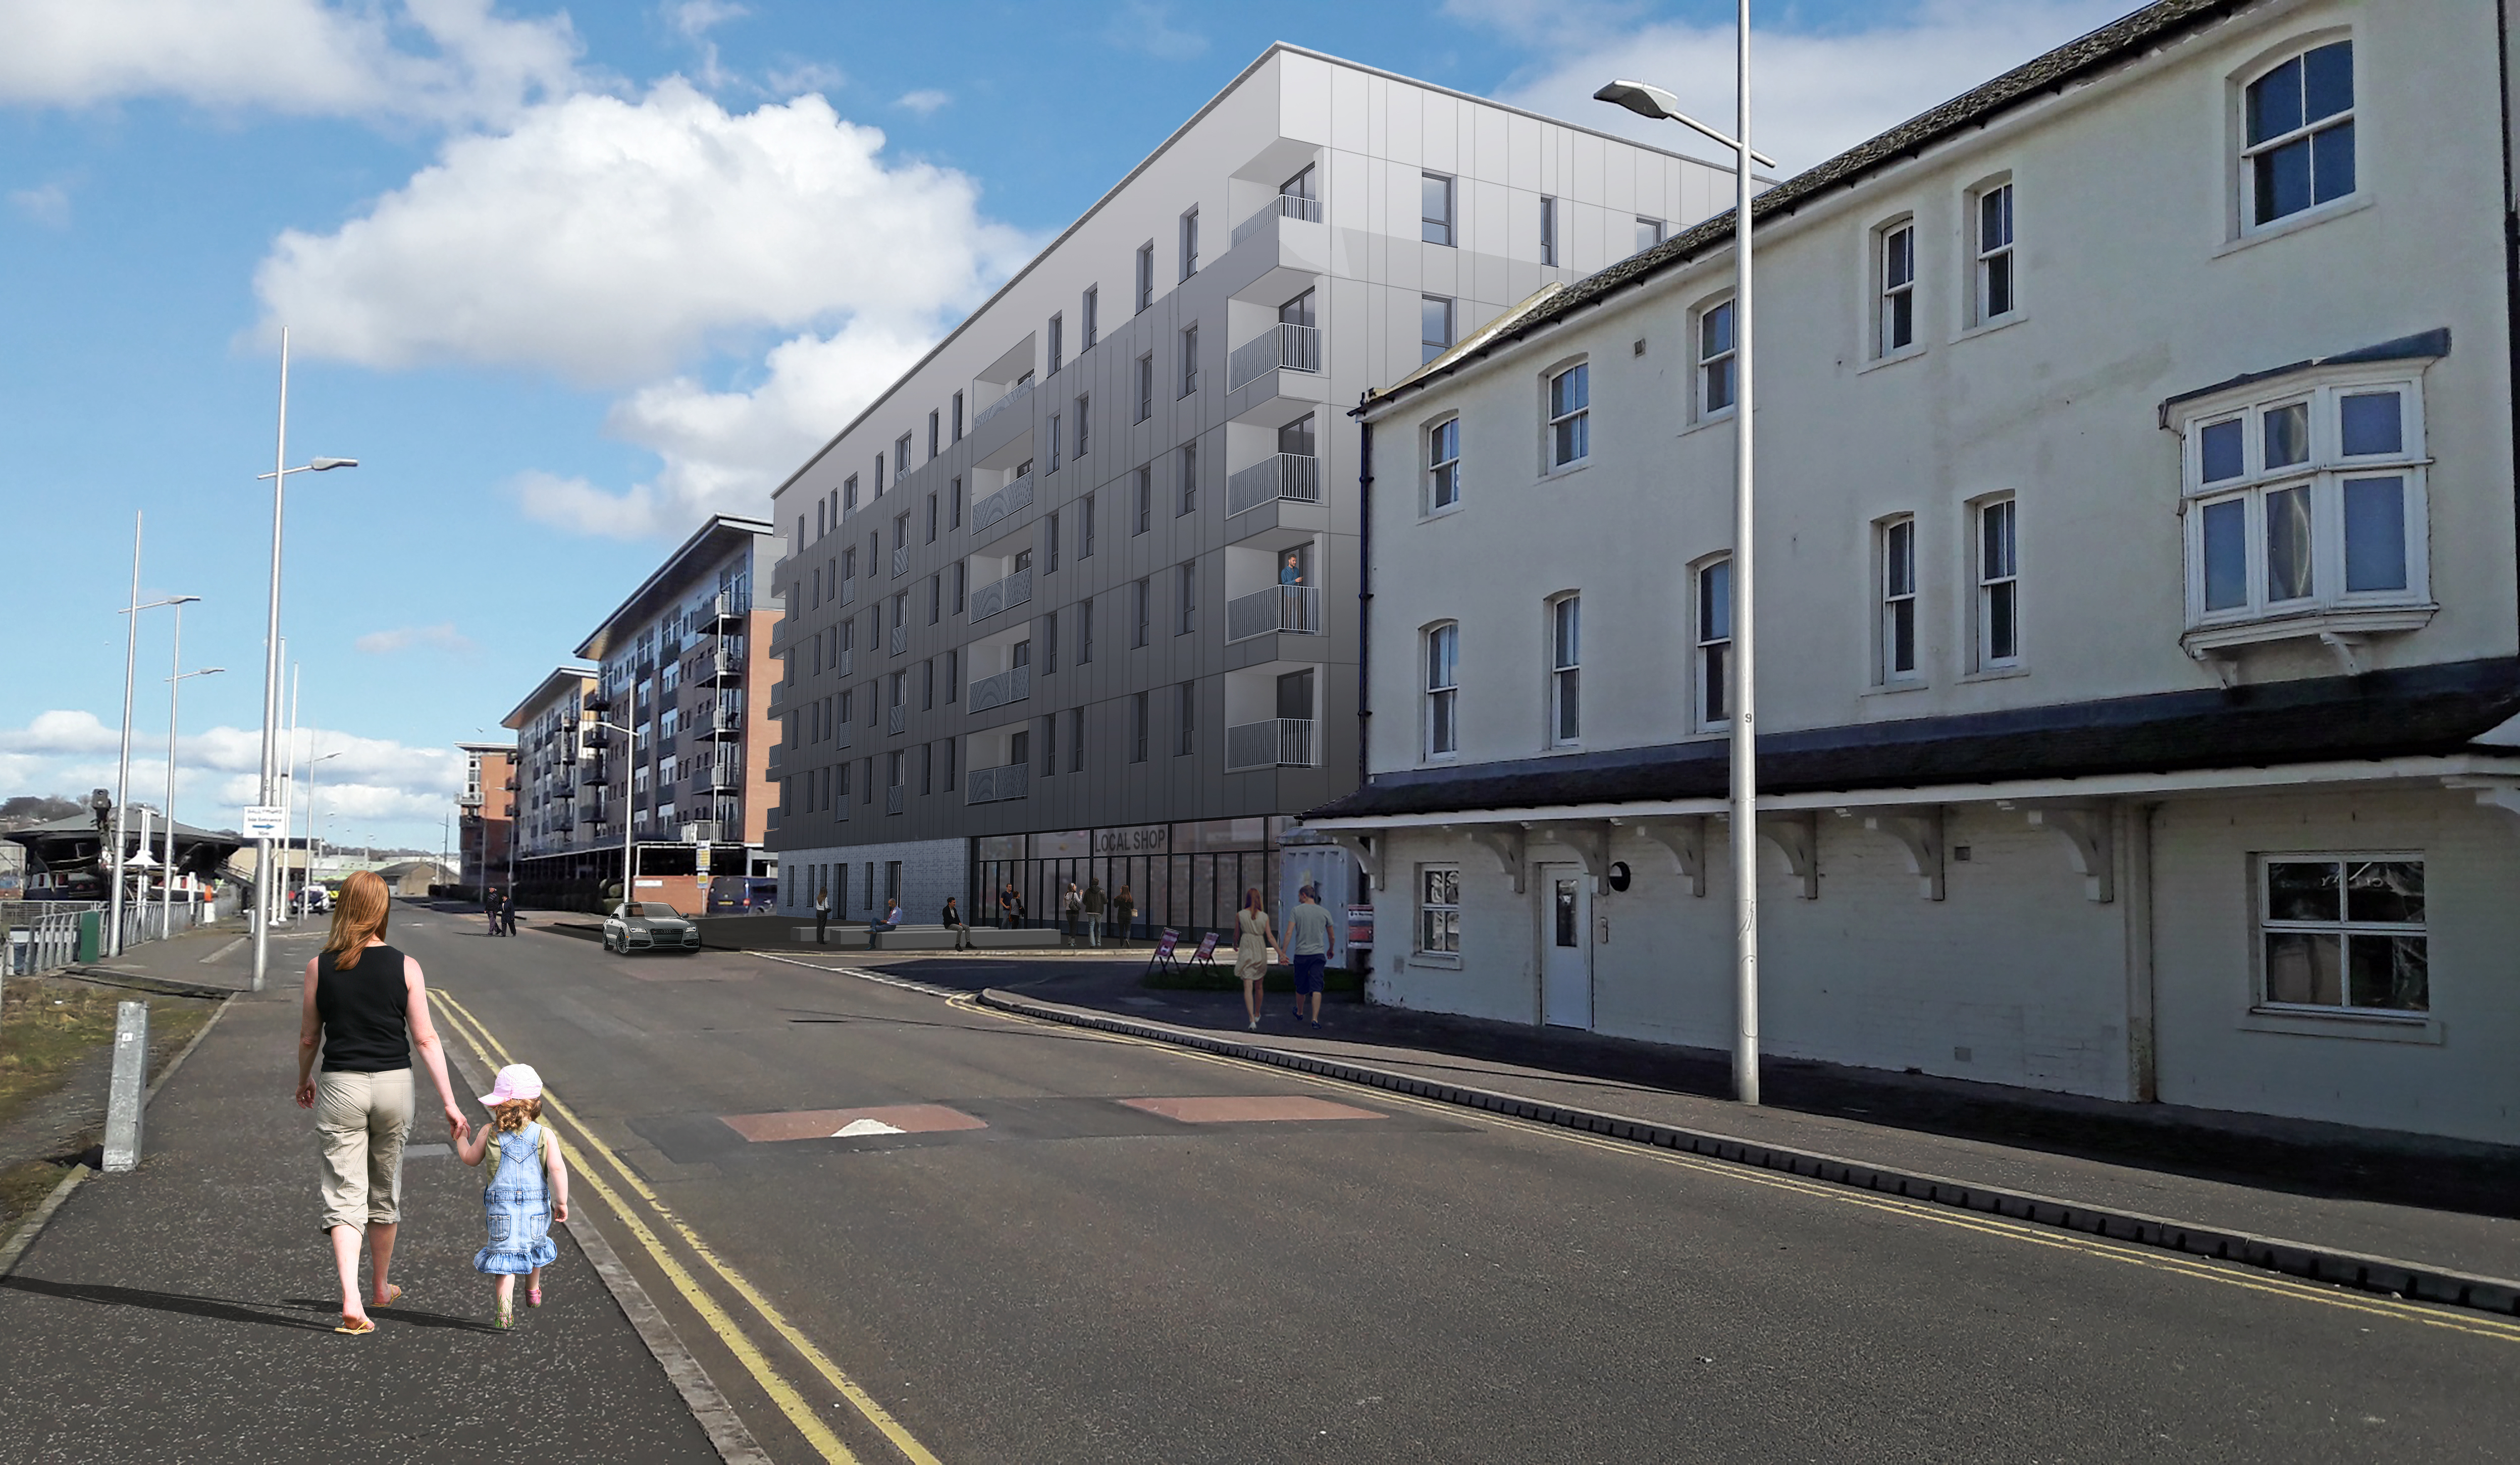 The flats will be built in a former car park